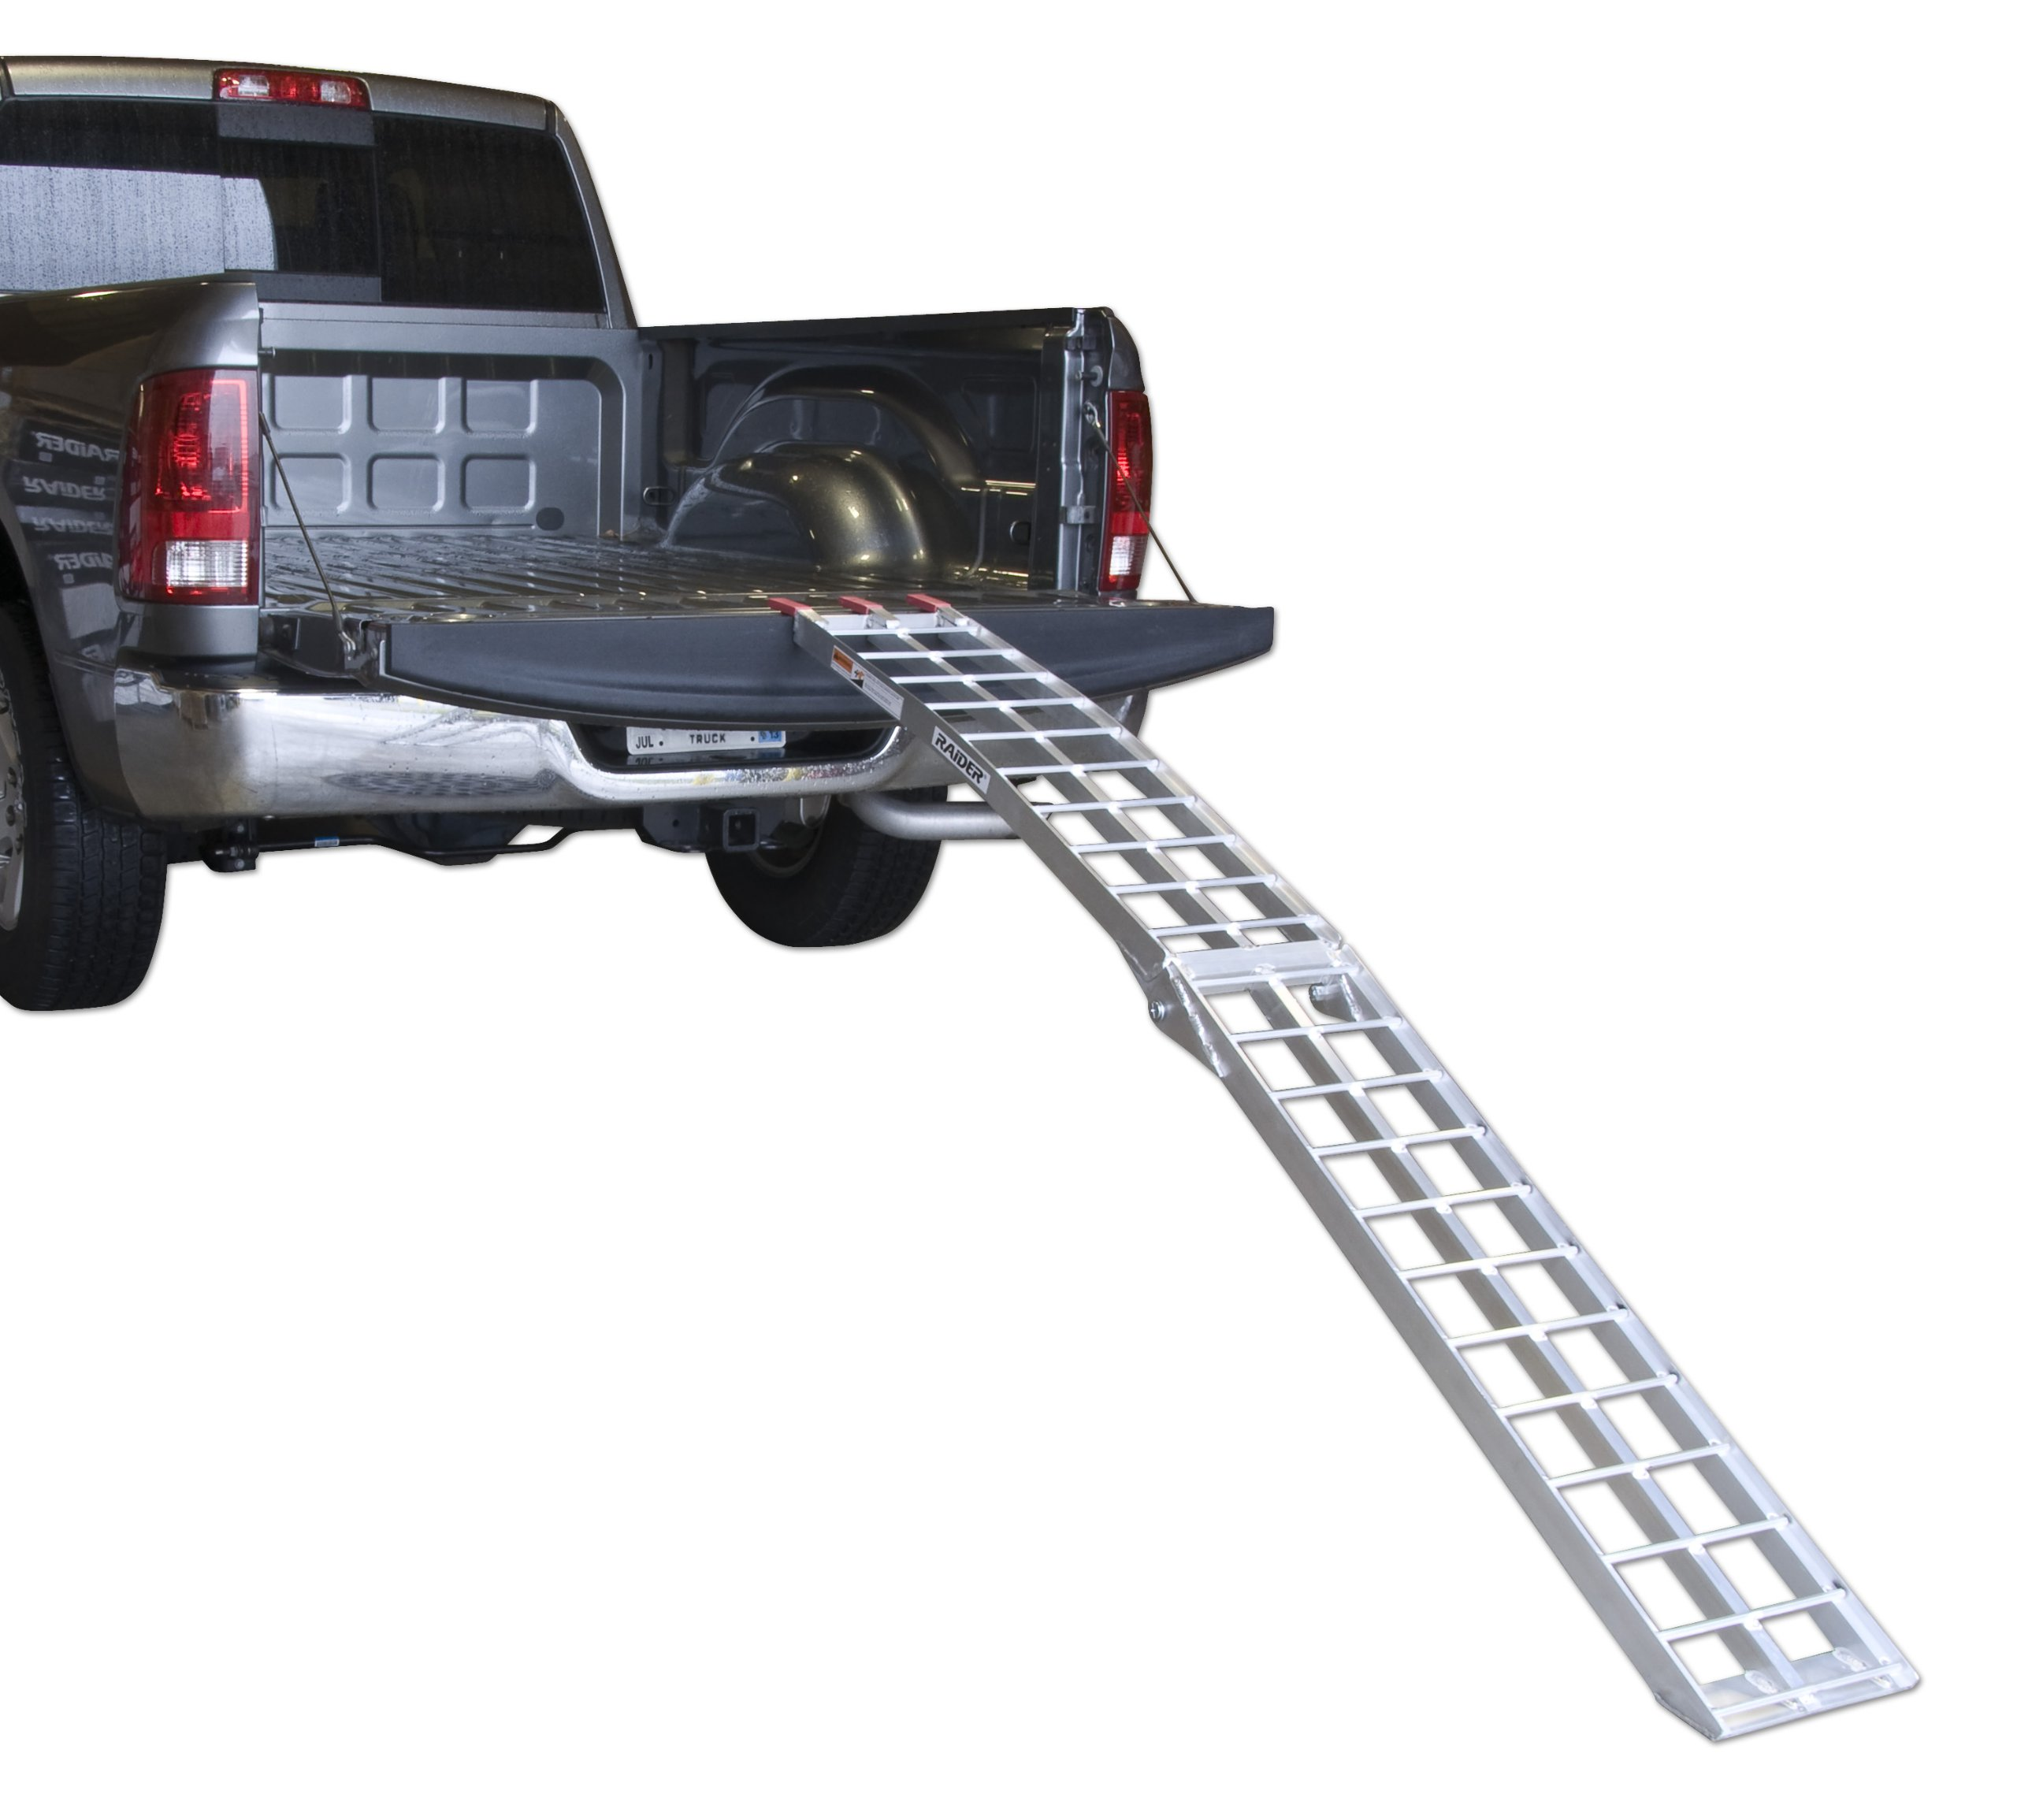 Raider 7.4-Feet Long Motorcycle Scooter Bi-Fold Aluminum Loading Ramp (750 lb. Weight Capacity) by Raider (Image #1)